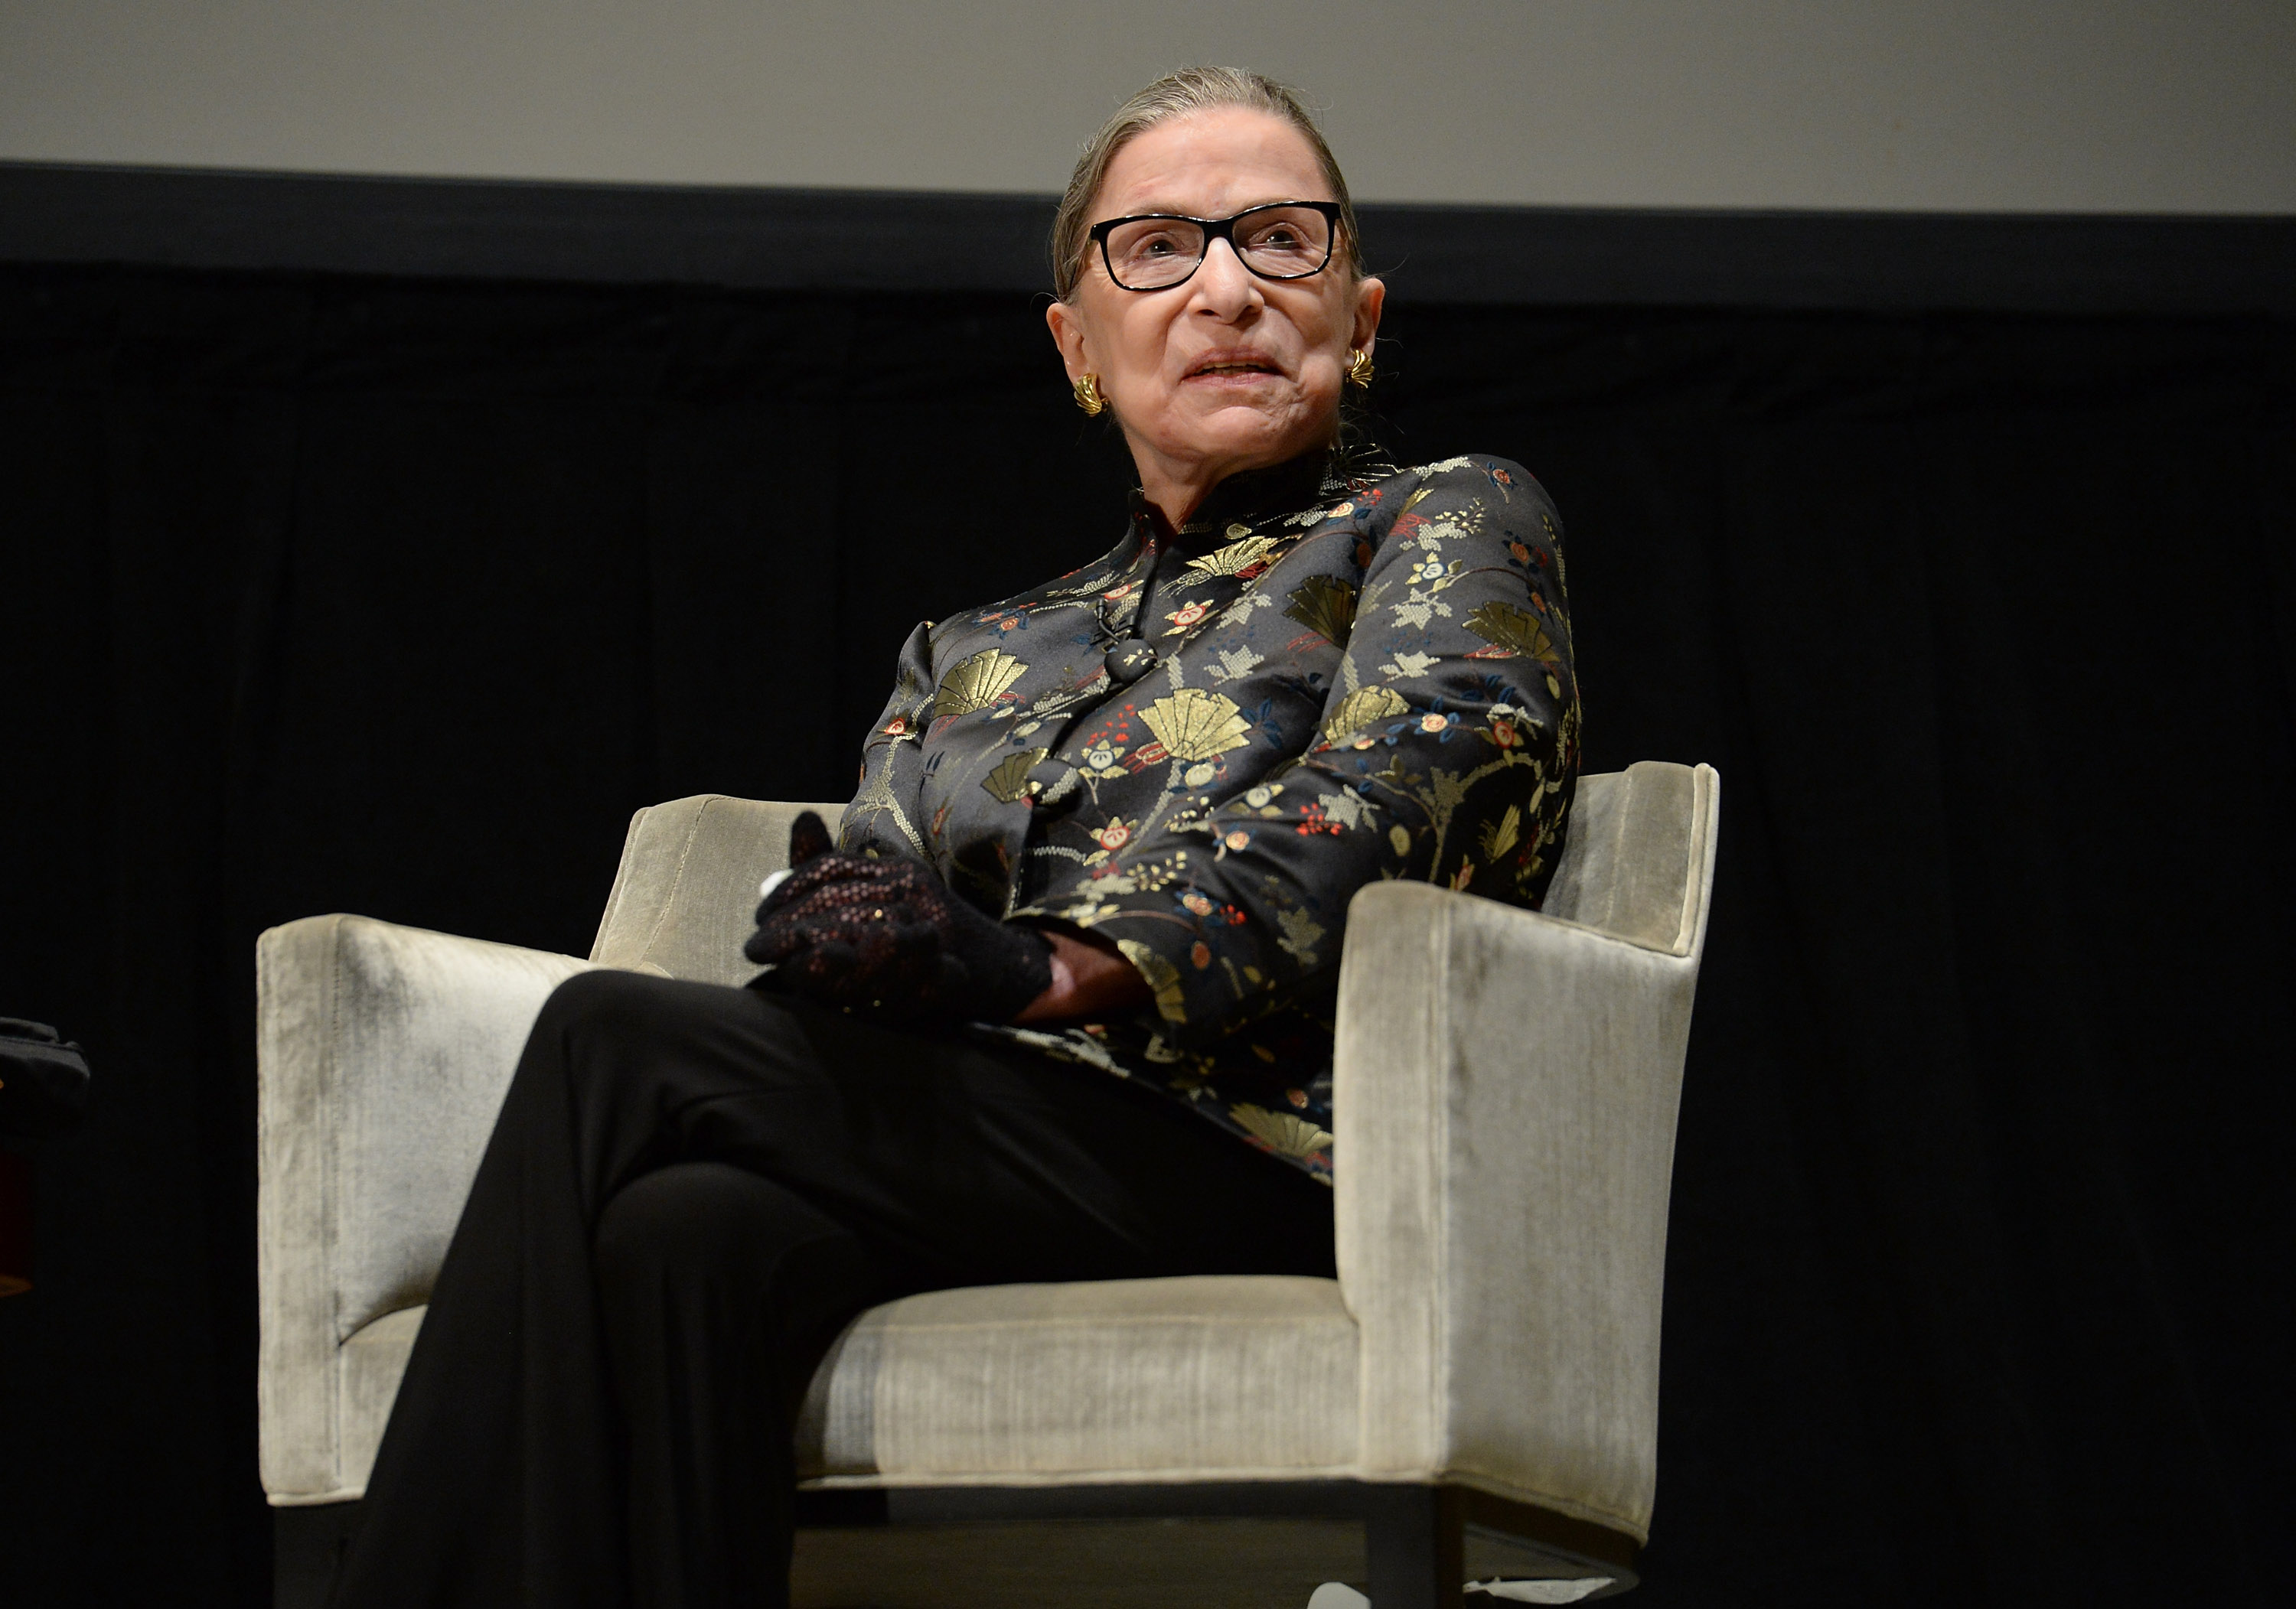 Supreme Court Justice Ruth Bader Ginsburg presents onstage at An Historic Evening with Supreme Court Justice Ruth Bader Ginsburg at the Temple Emanu-El Skirball Center on September 21, 2016 in New York City.